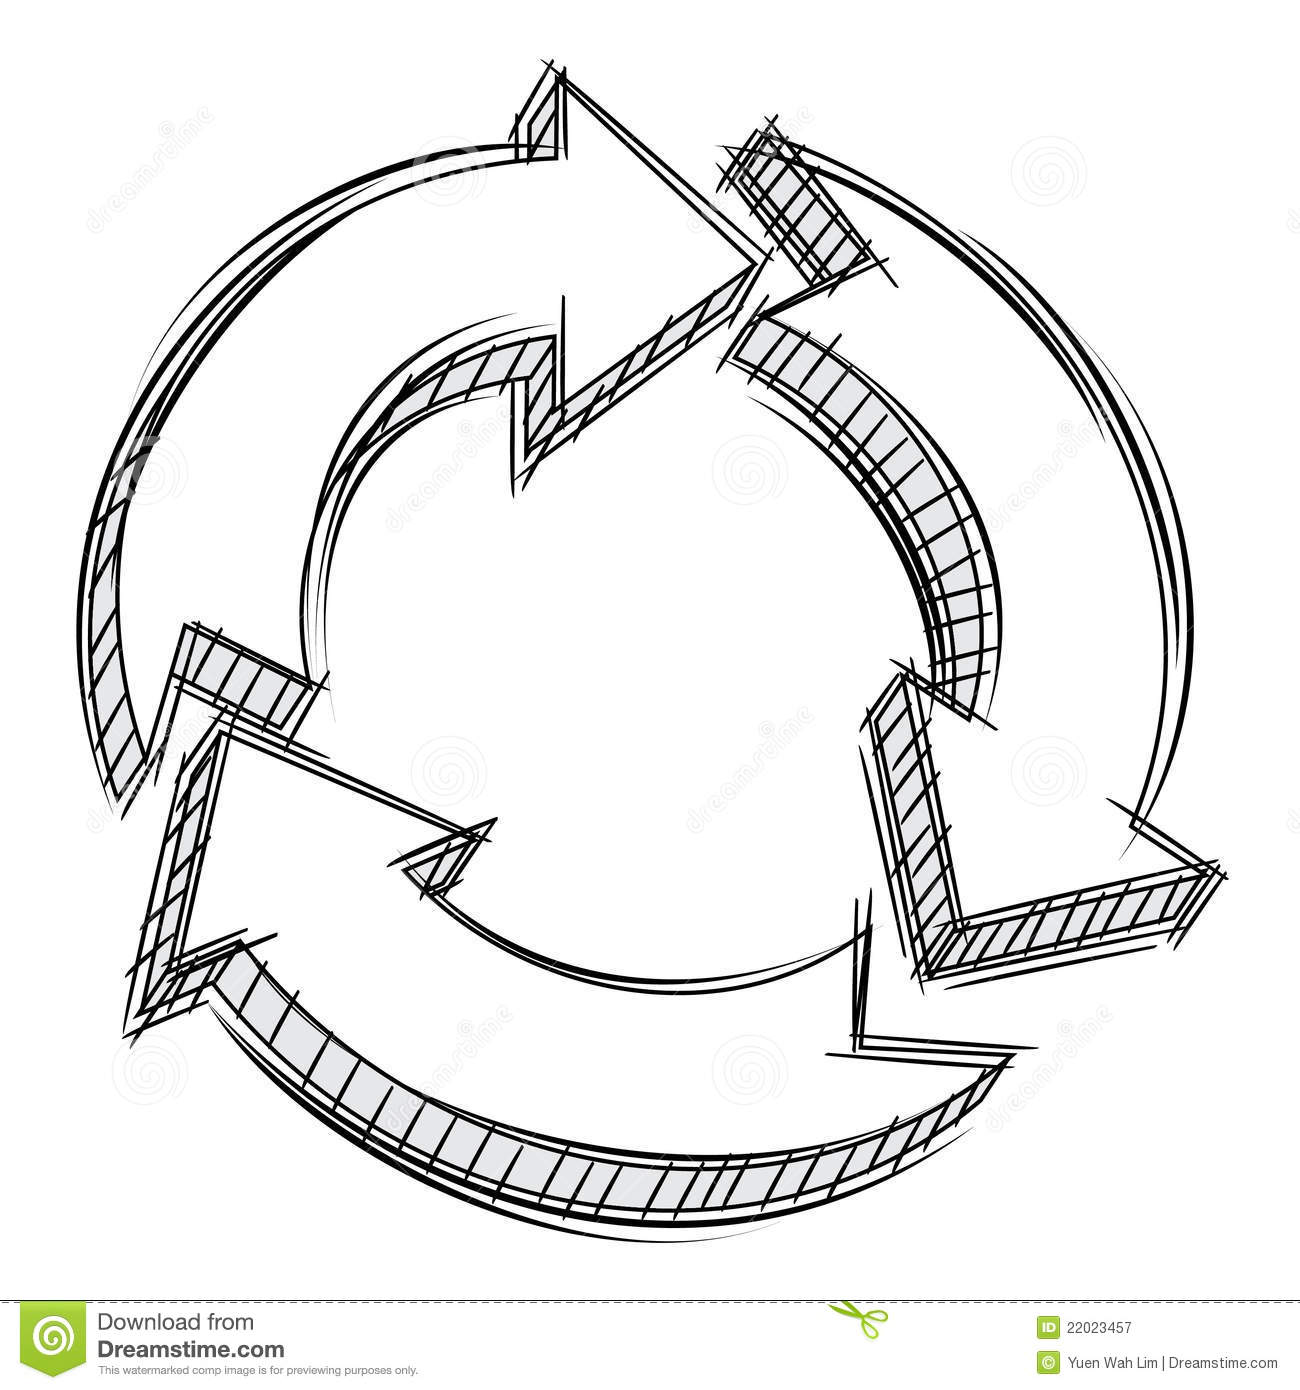 Doodle Of Three Circular Arrows Royalty Free Stock